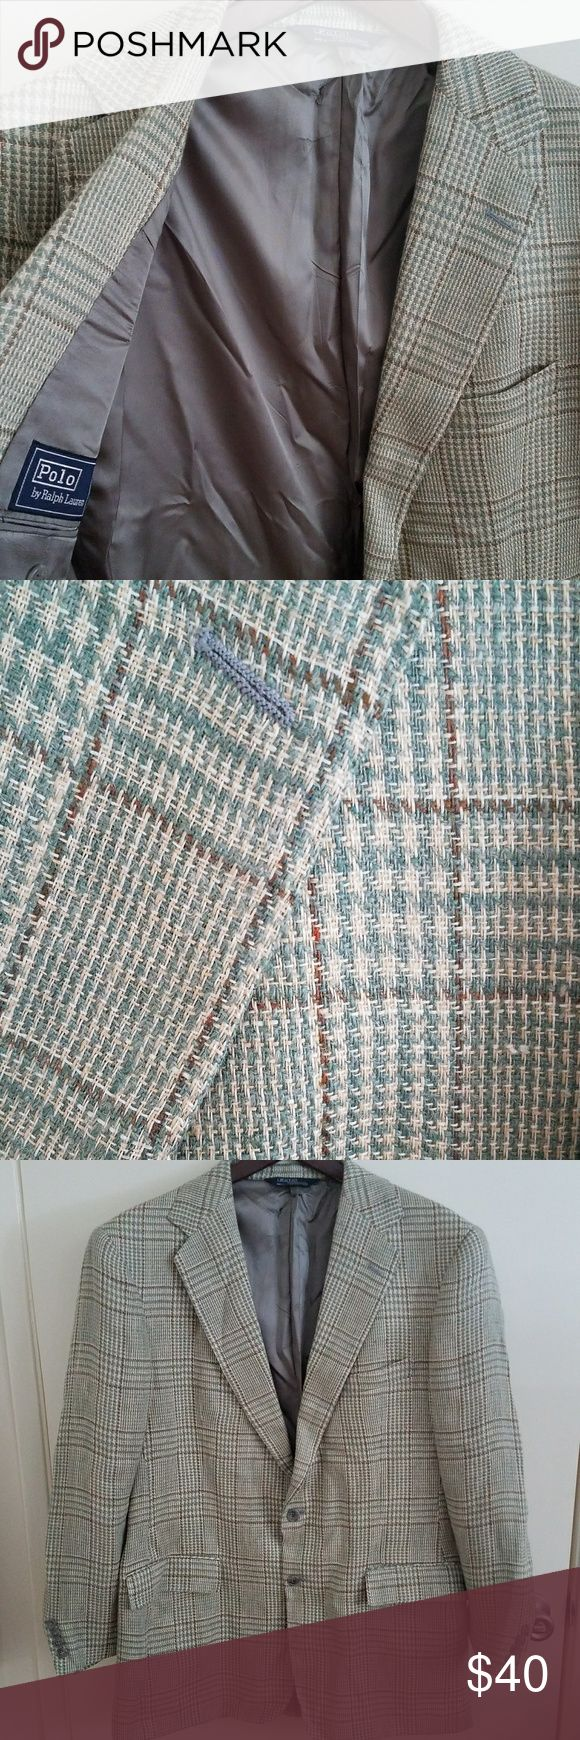 """Ralph Lauren blazer jacket 42 L greenish plaid NWD Authentic Polo Ralph Lauren woven jacket size 42 L Purchased from Nordstrom's  New with defects, Jacket is brand-new, last photo inside next to RL tag nicked by an iron. NBD   Perfect all year round jacket  Size measurements -   Armpit to armpit is 23"""" across  Top of collar to bottom 33""""  This is in like new condition, worn once, great look. Message me with any questions  I will ignore all low-ball offers, no trades thanks  Lower price if…"""